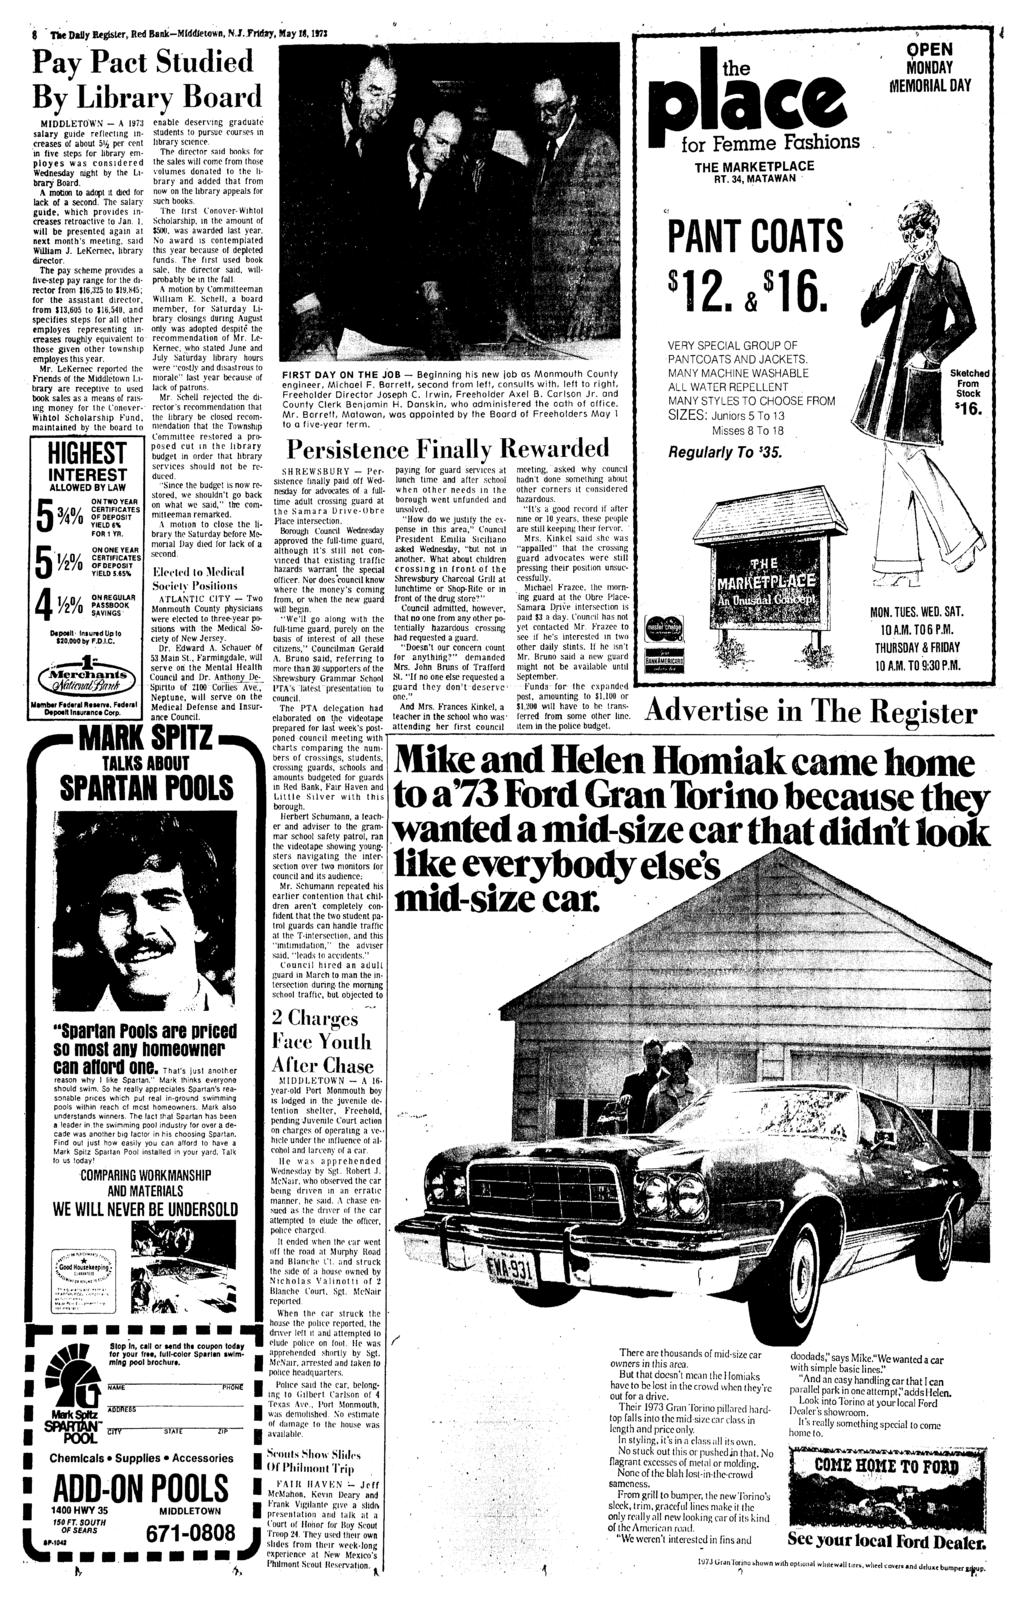 7 Monnioutli Countys Outstanding Home Newspaper Red Bank Nj Harness Routing Under Hood For 1973 Amc 6 Cylinder Hornet Matador And Gremlin The Dally Register M Wdjetown N J